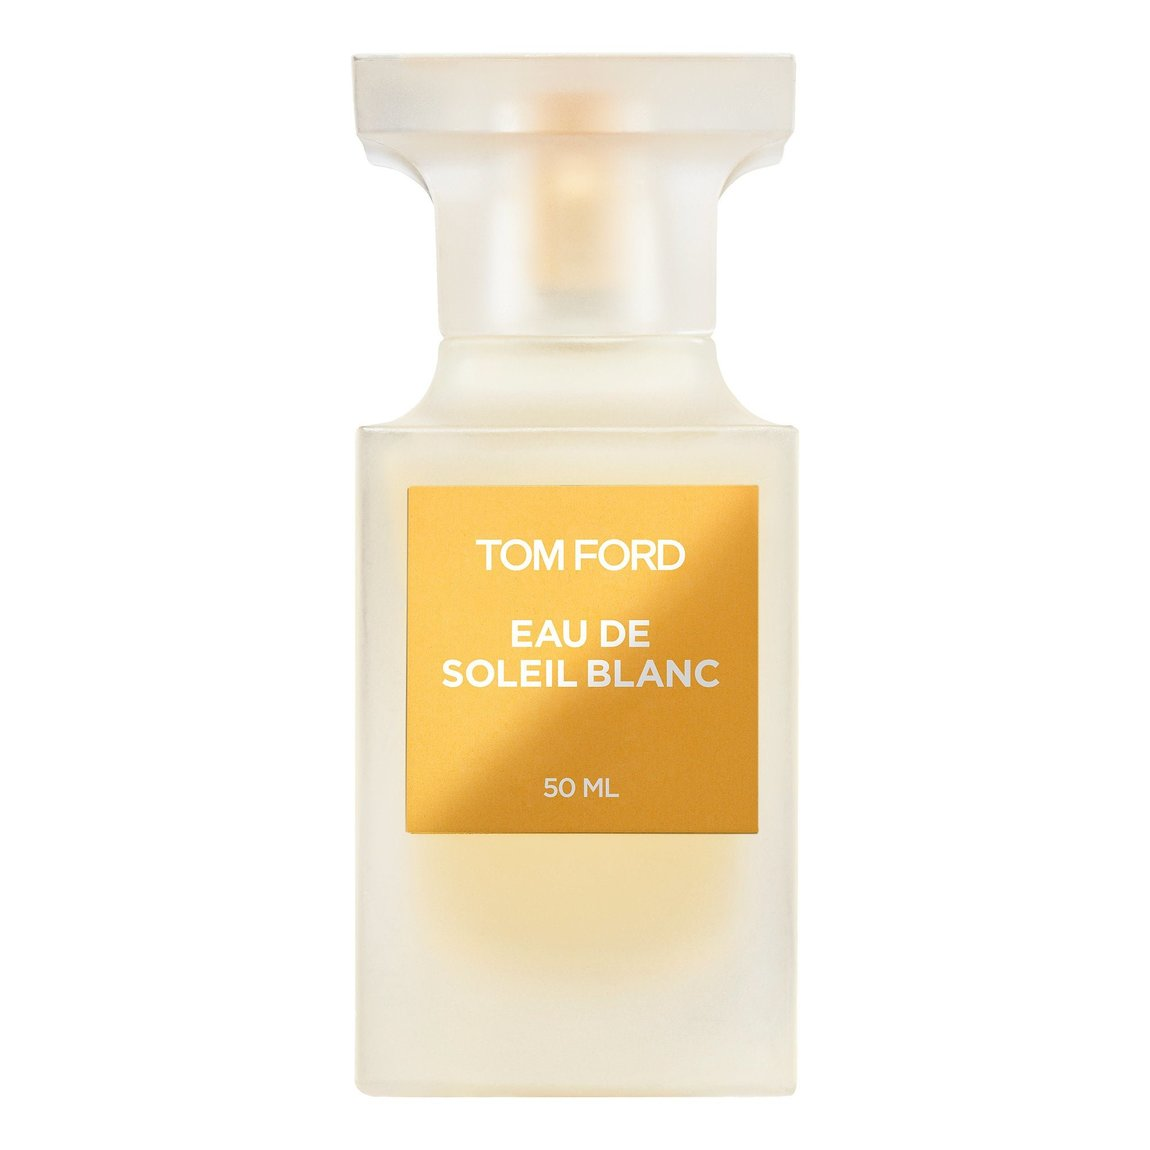 TOM FORD Eau de Soleil Blanc 50  ml product smear.